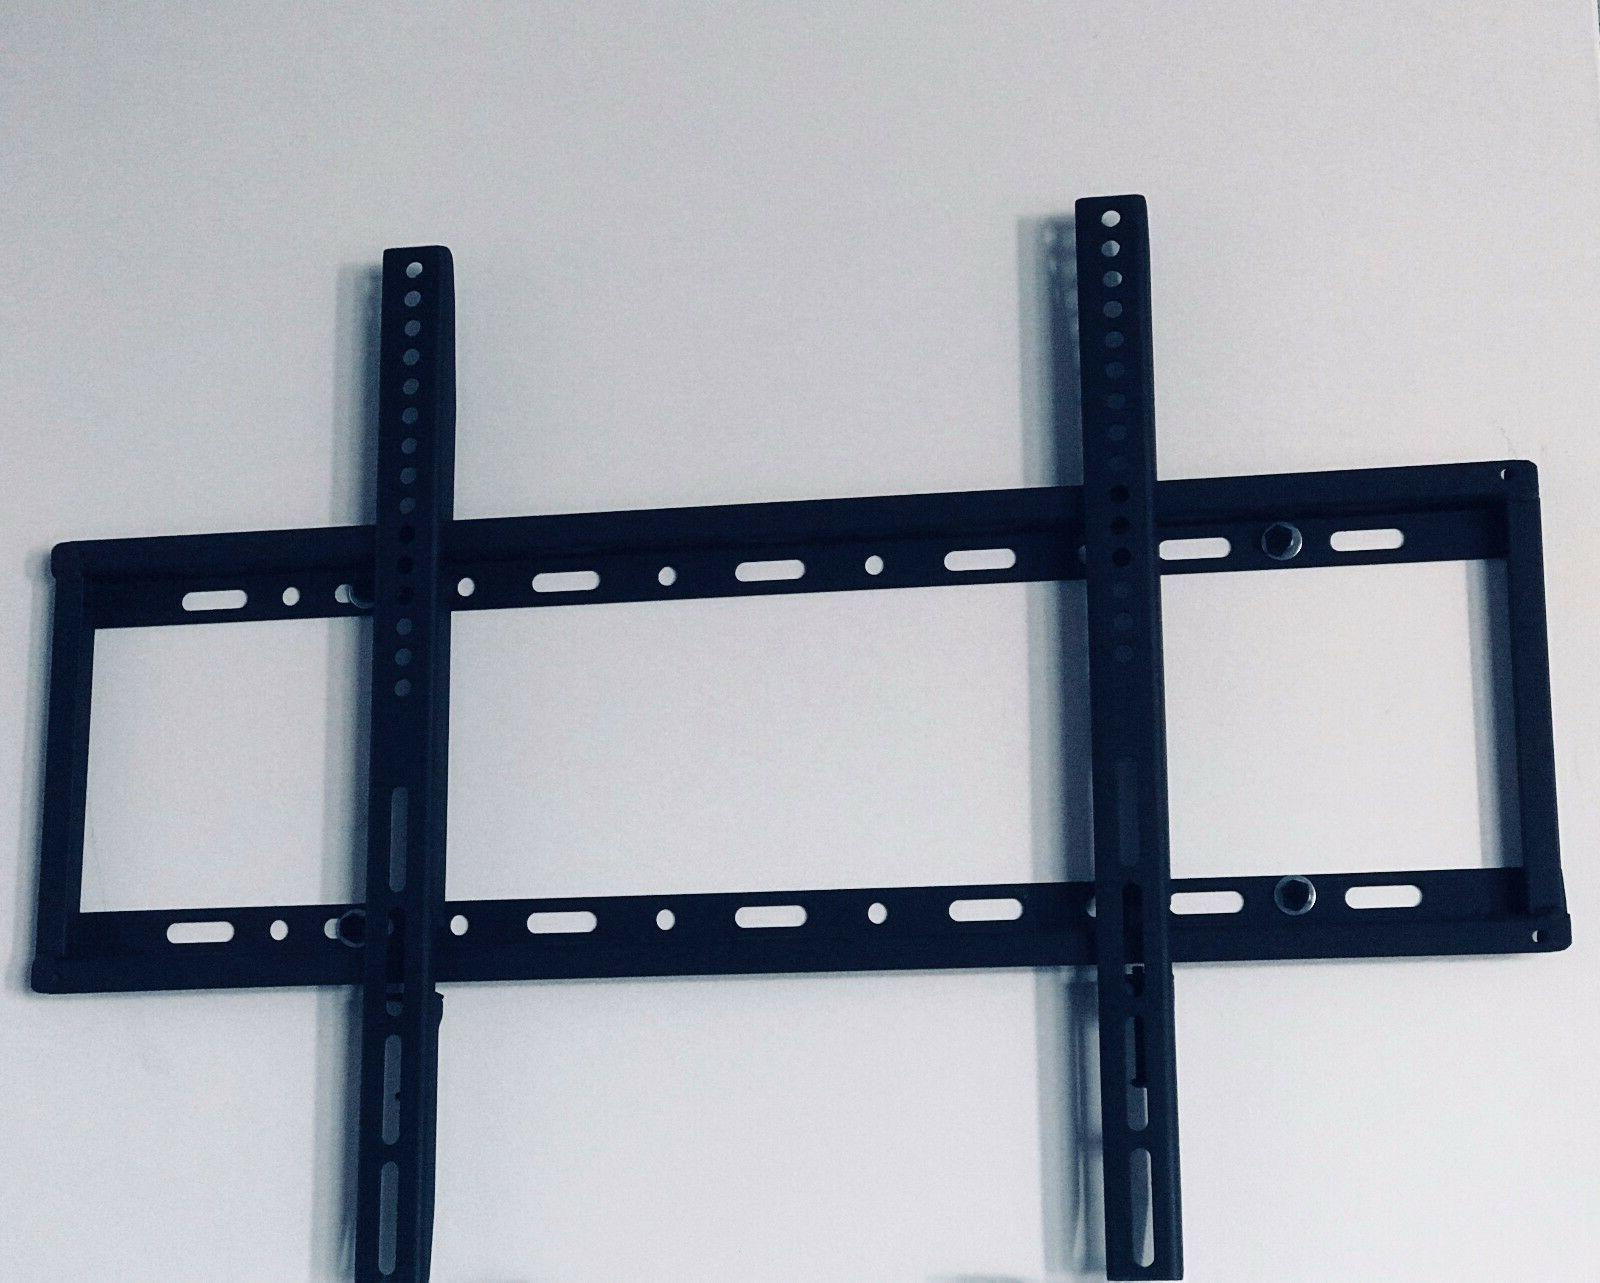 AXXIS LARGE TV MOUNT - FIXED Low Profile TV Wall Mount Brack